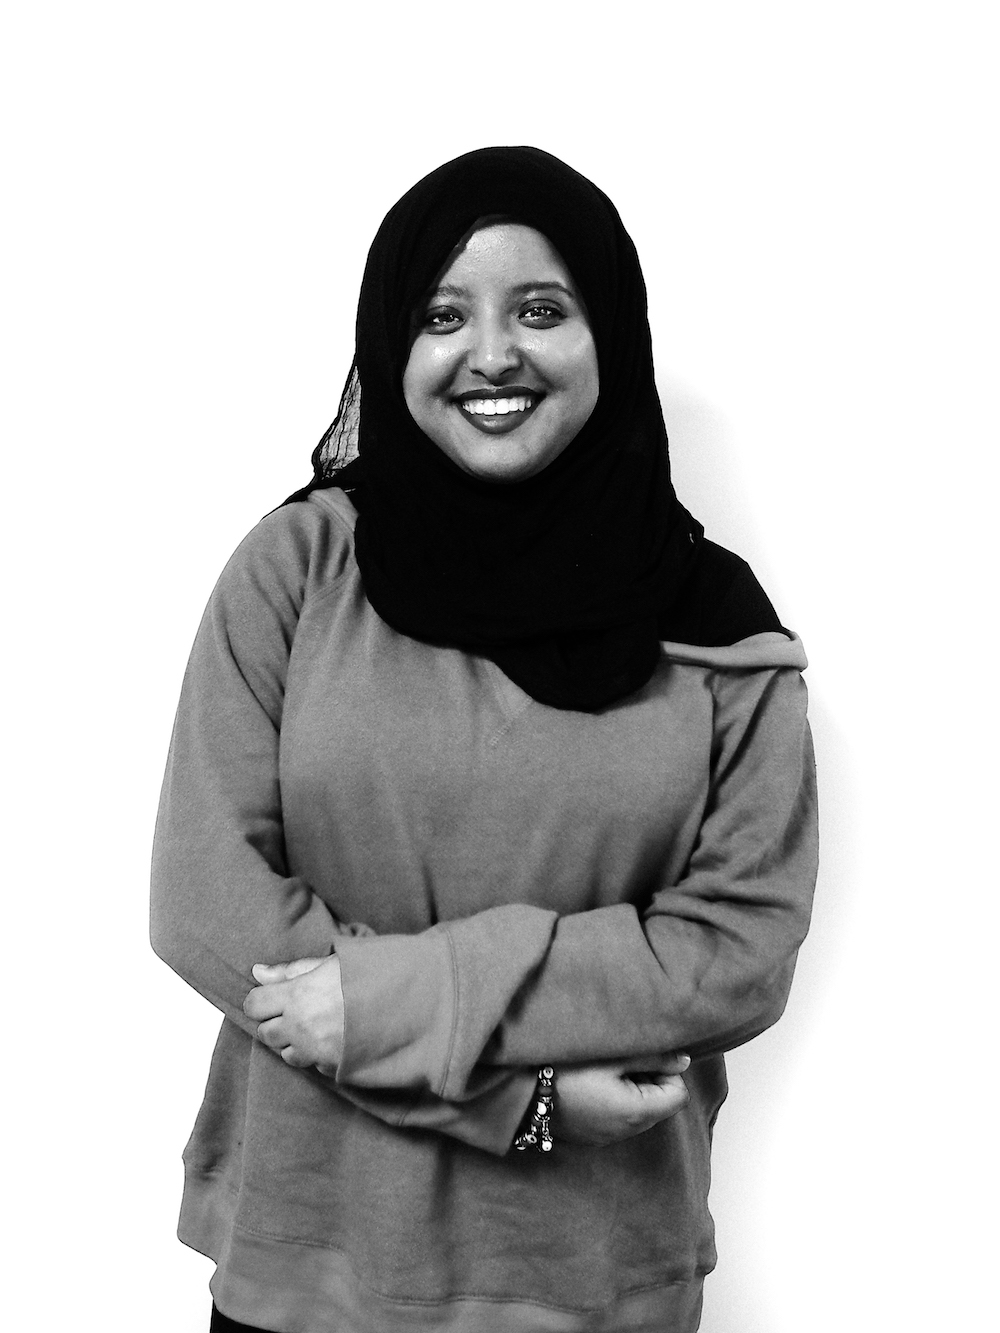 Meriam Salem - Muslim CohortSponsor: Justice for Muslims CollectiveMeriam Salem is a visual artist and filmmaker, who graduated from American University with a degree in development, human rights, and a minor in film and media.She believes that film is an important tool for bringing both social impact and education into a coherent catalyst for change.Instagram:@salemsnaps